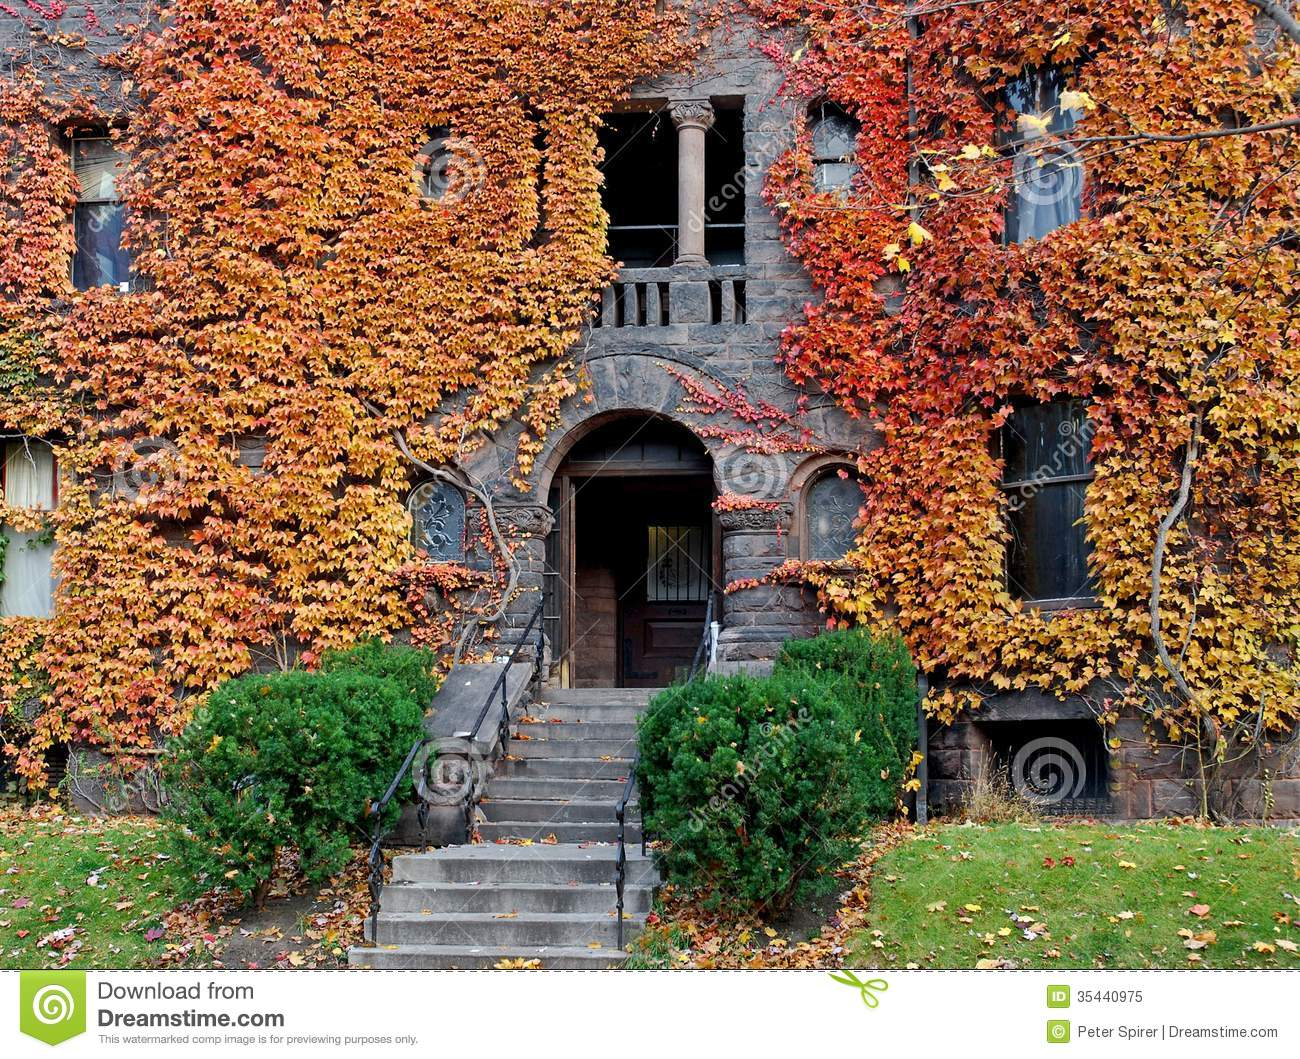 Pretty Fall Desktop Wallpaper College Building With Fall Ivy Stock Image Image Of